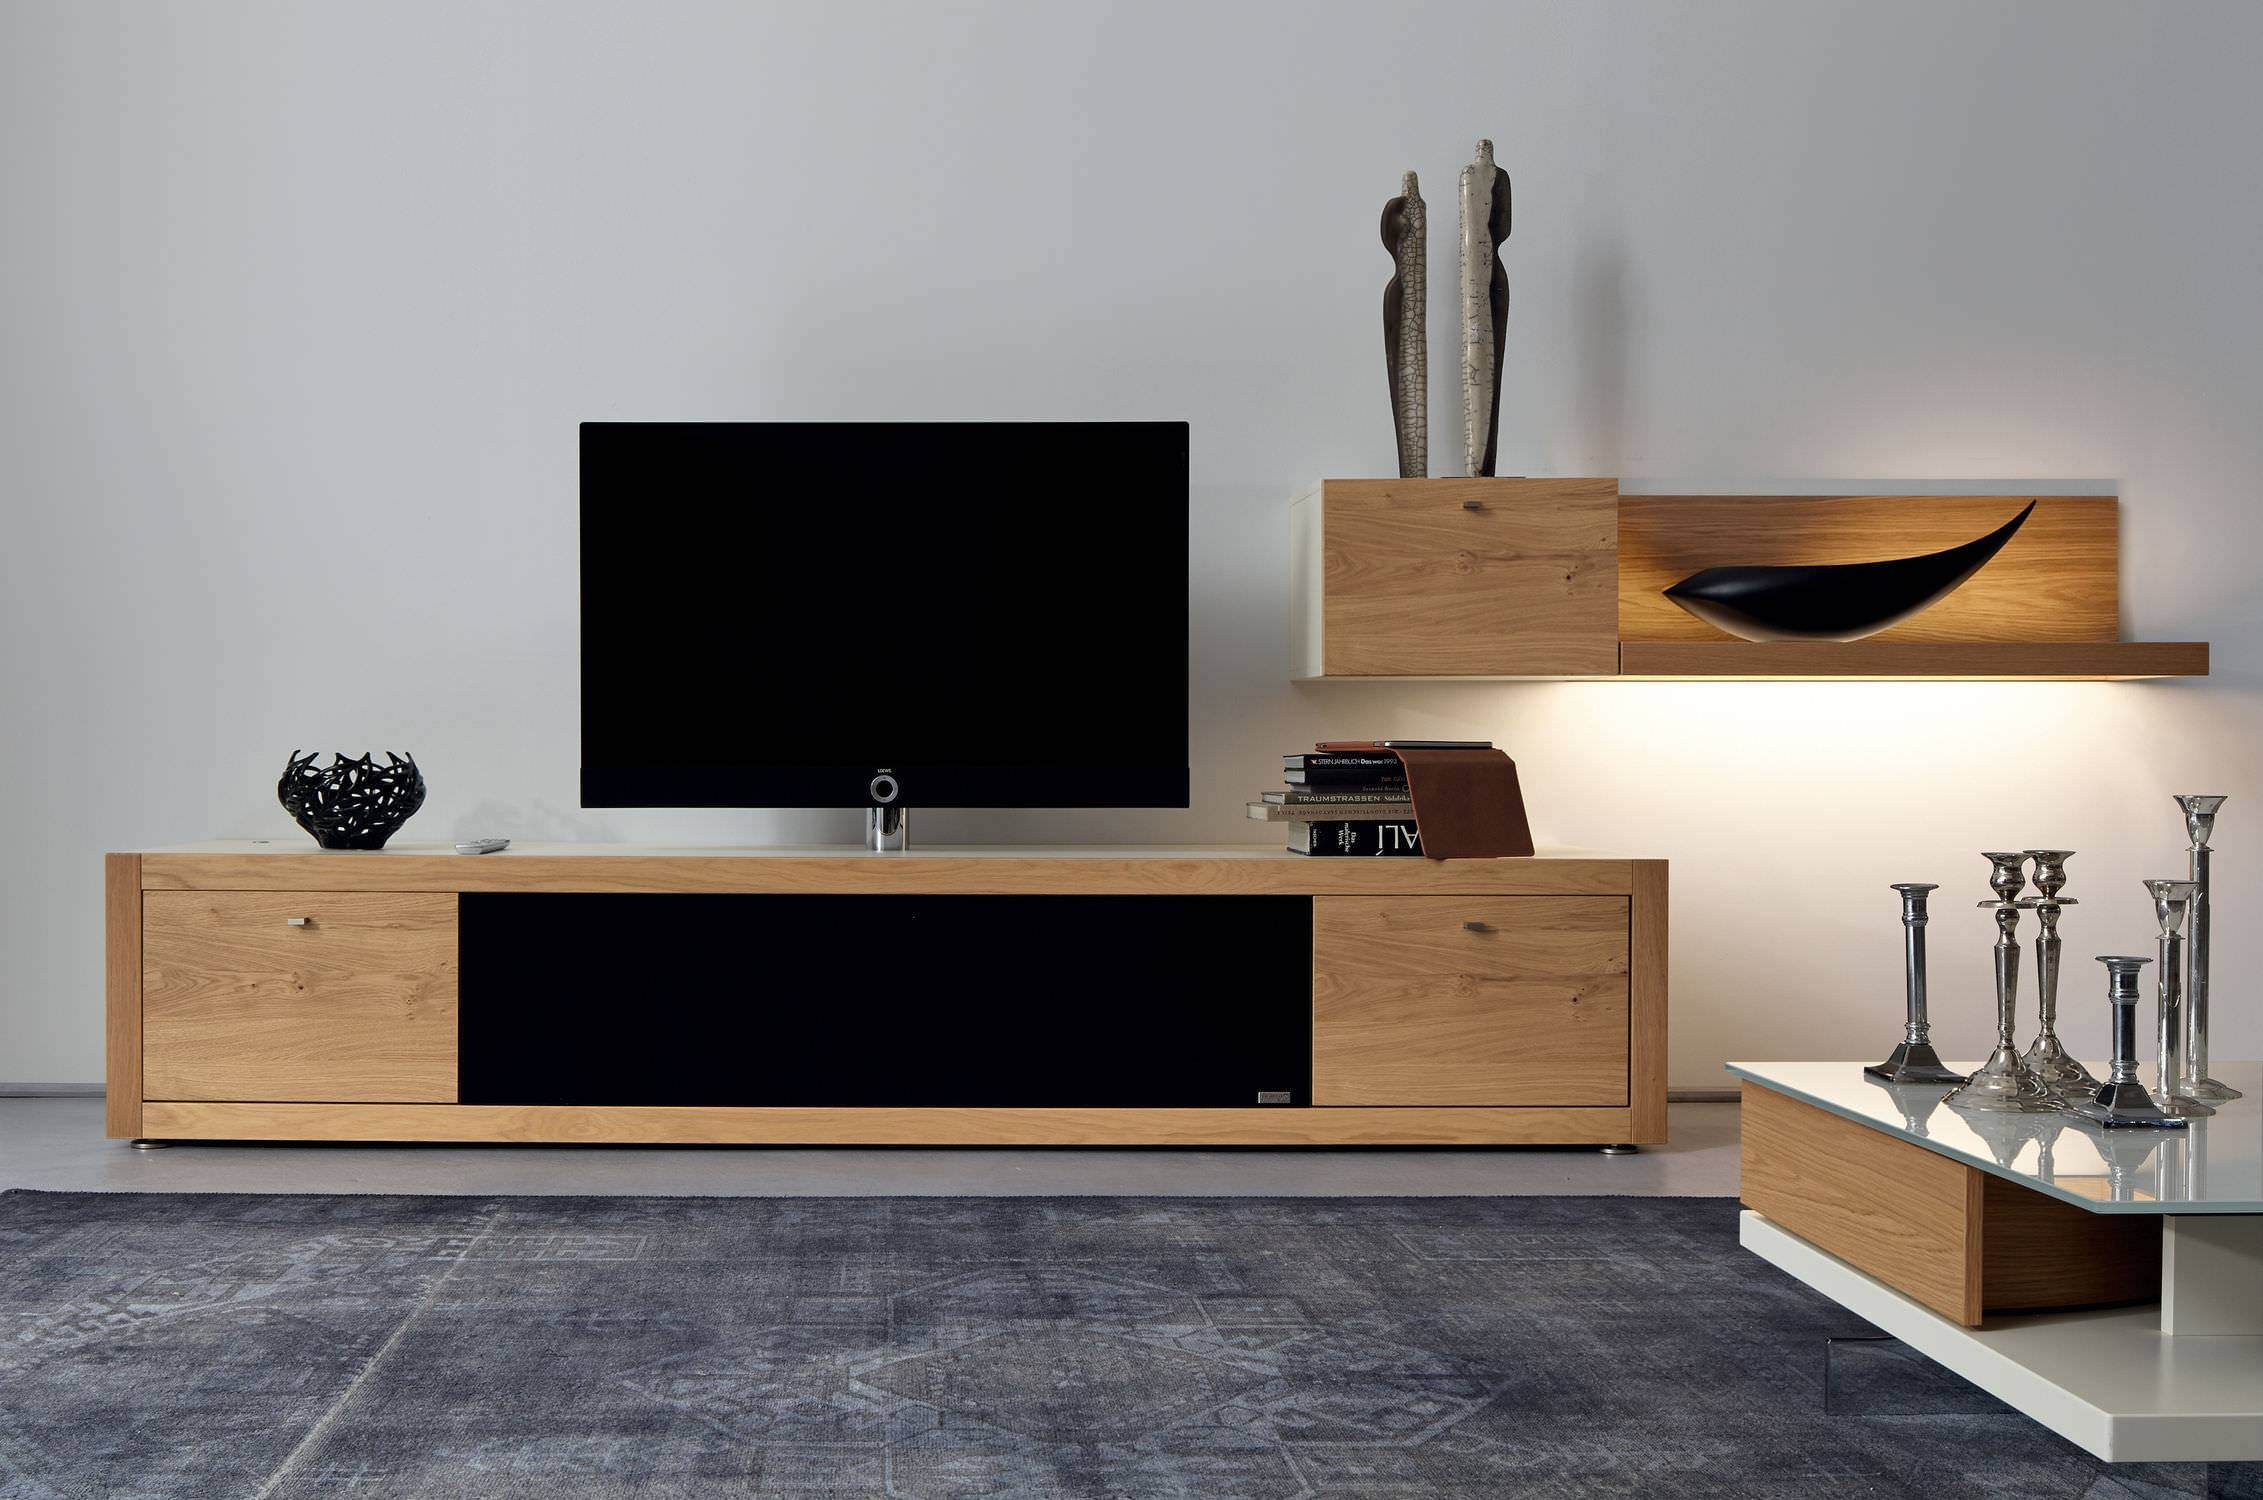 Furniture Trendy Tv Units For The Stylish Modern Home Minimalist Within Contemporary Oak Tv Stands (View 5 of 15)